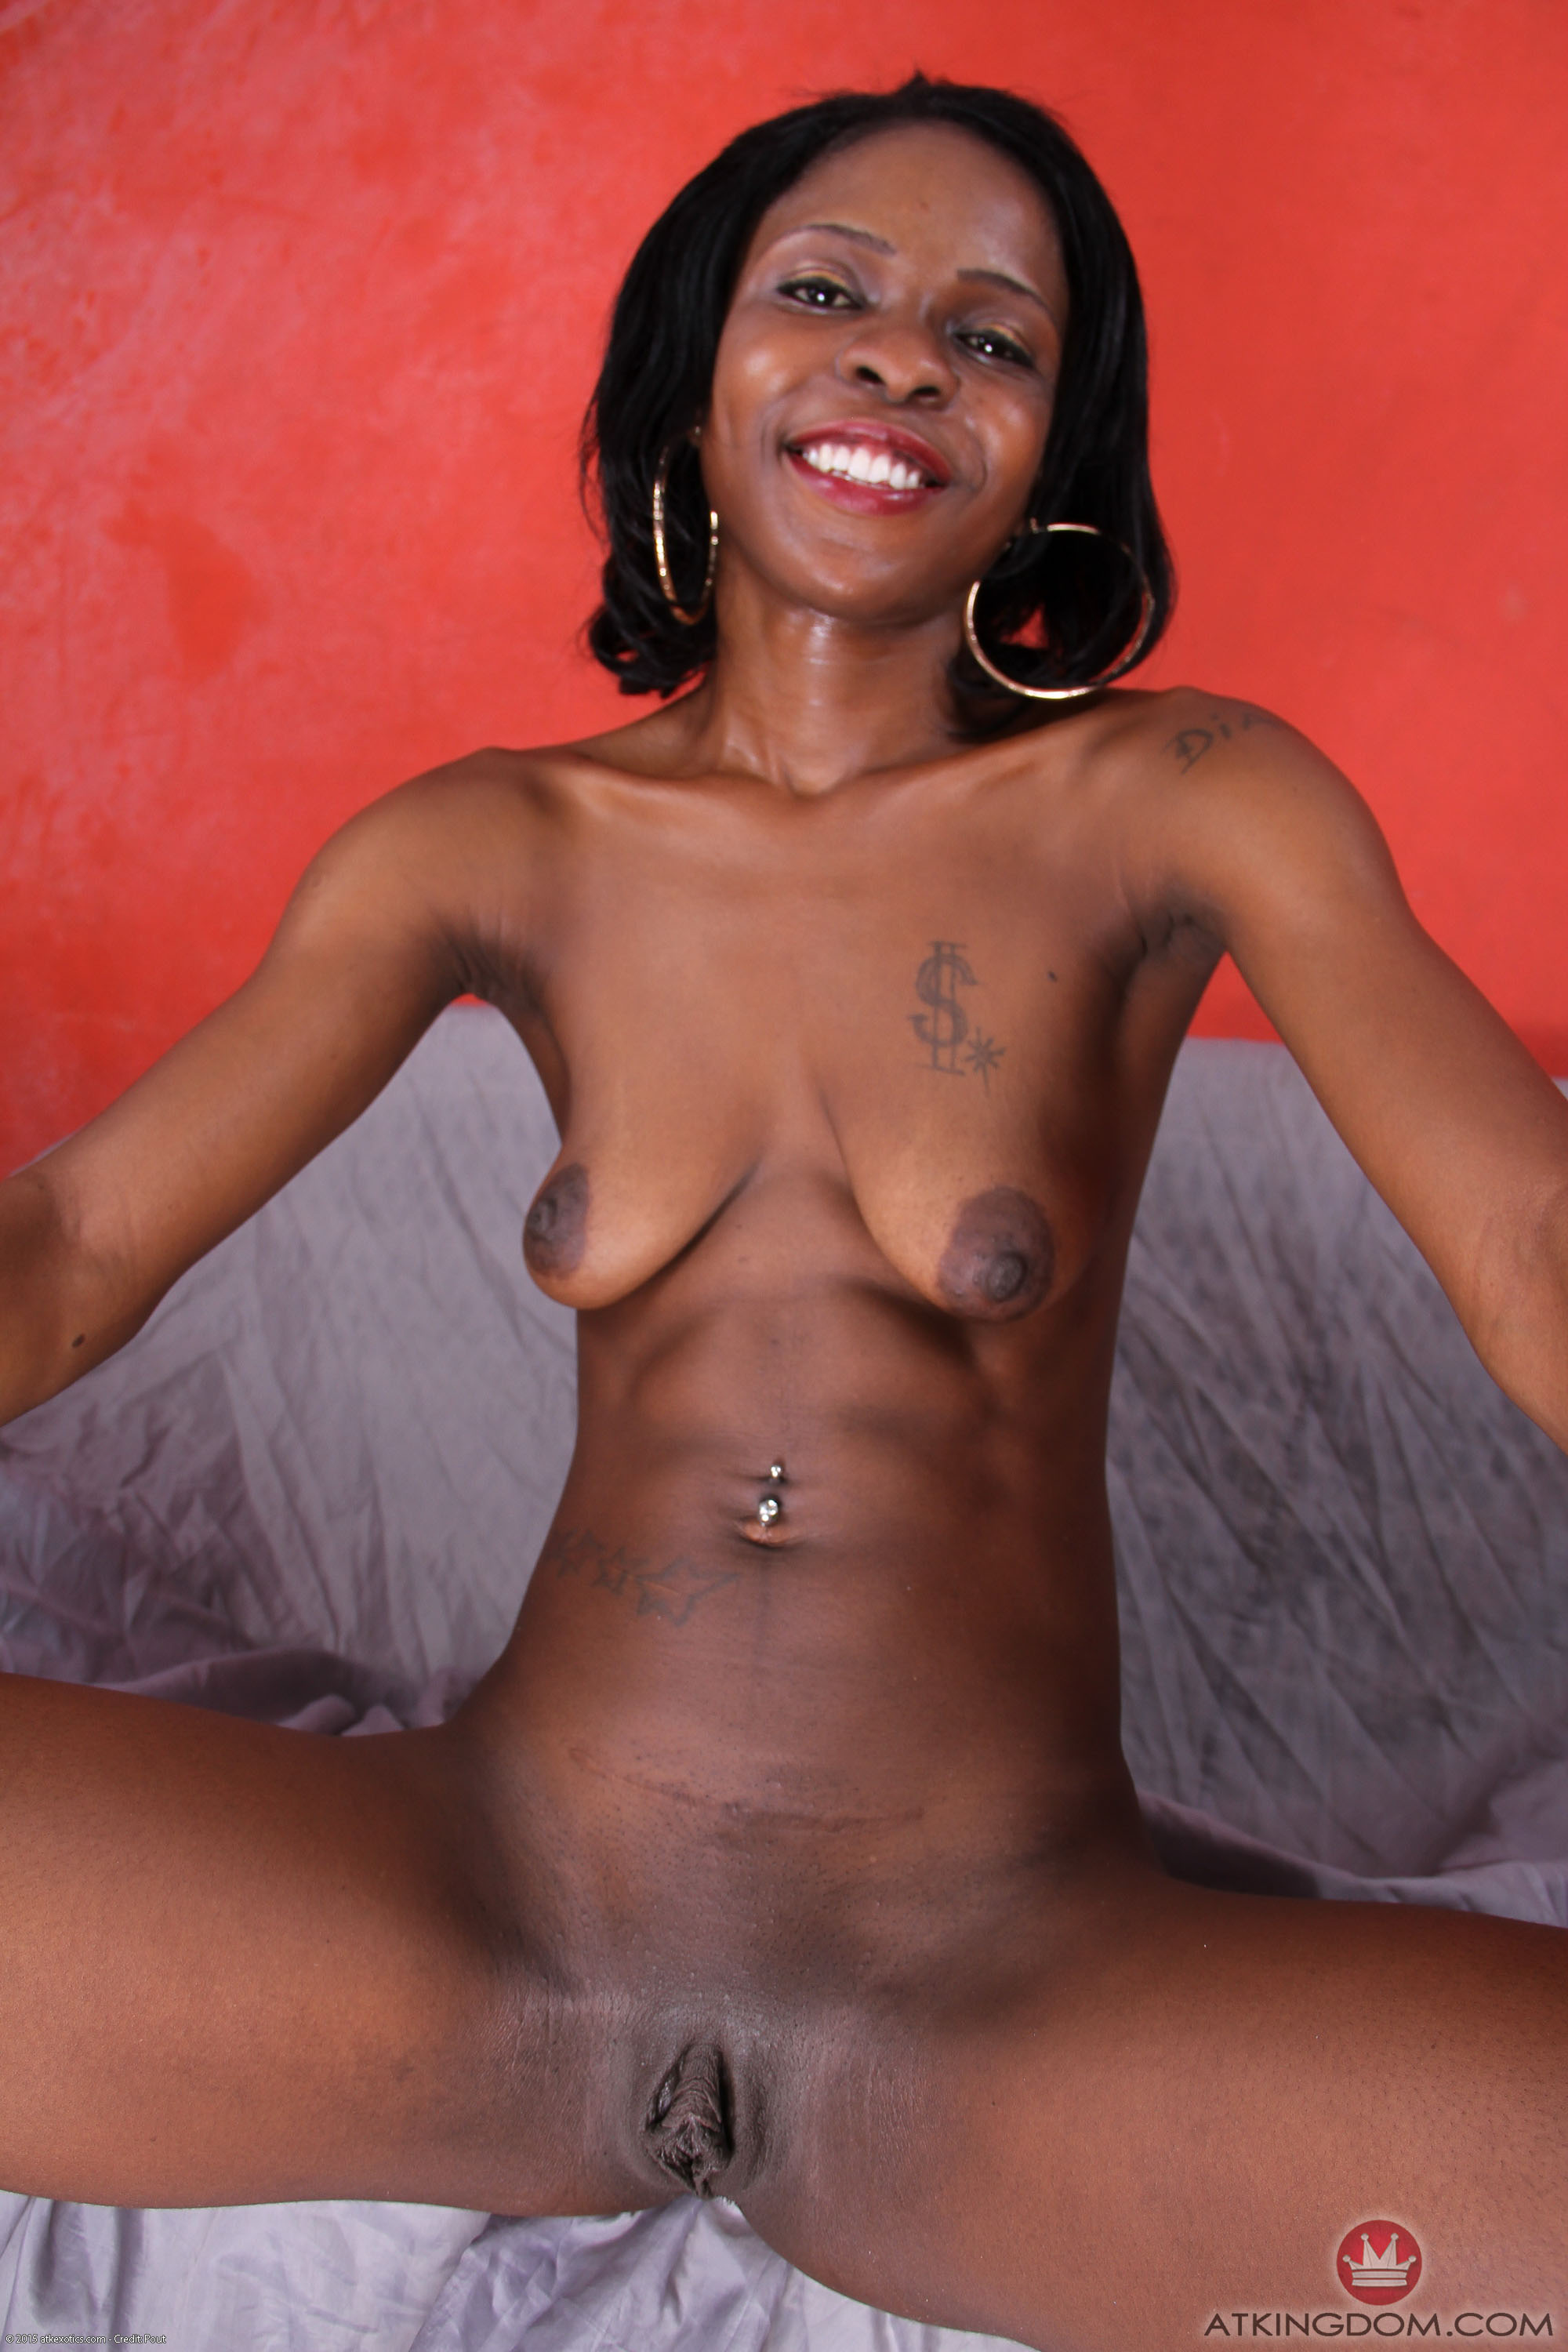 Similar it. Black girls sexx images excited too